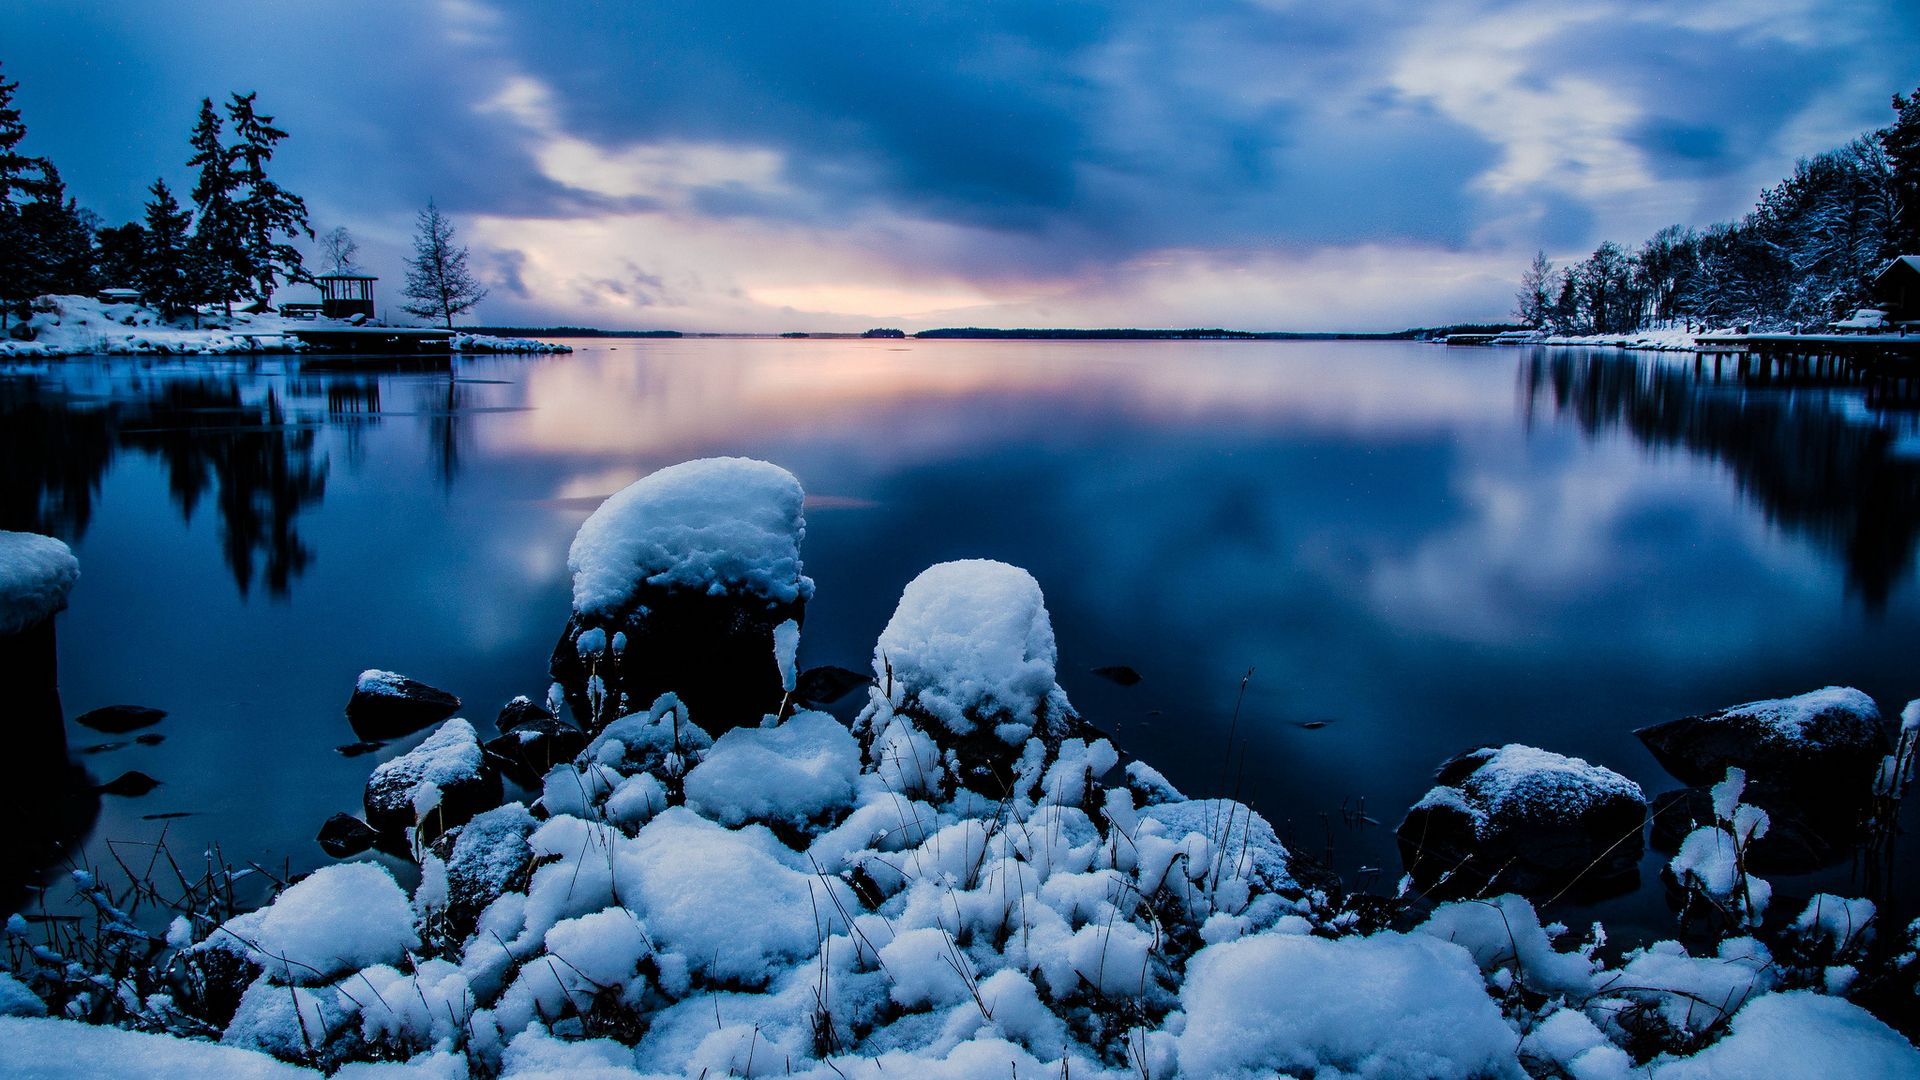 Cold Weather Wallpaper wallpapers 2020 Beautiful